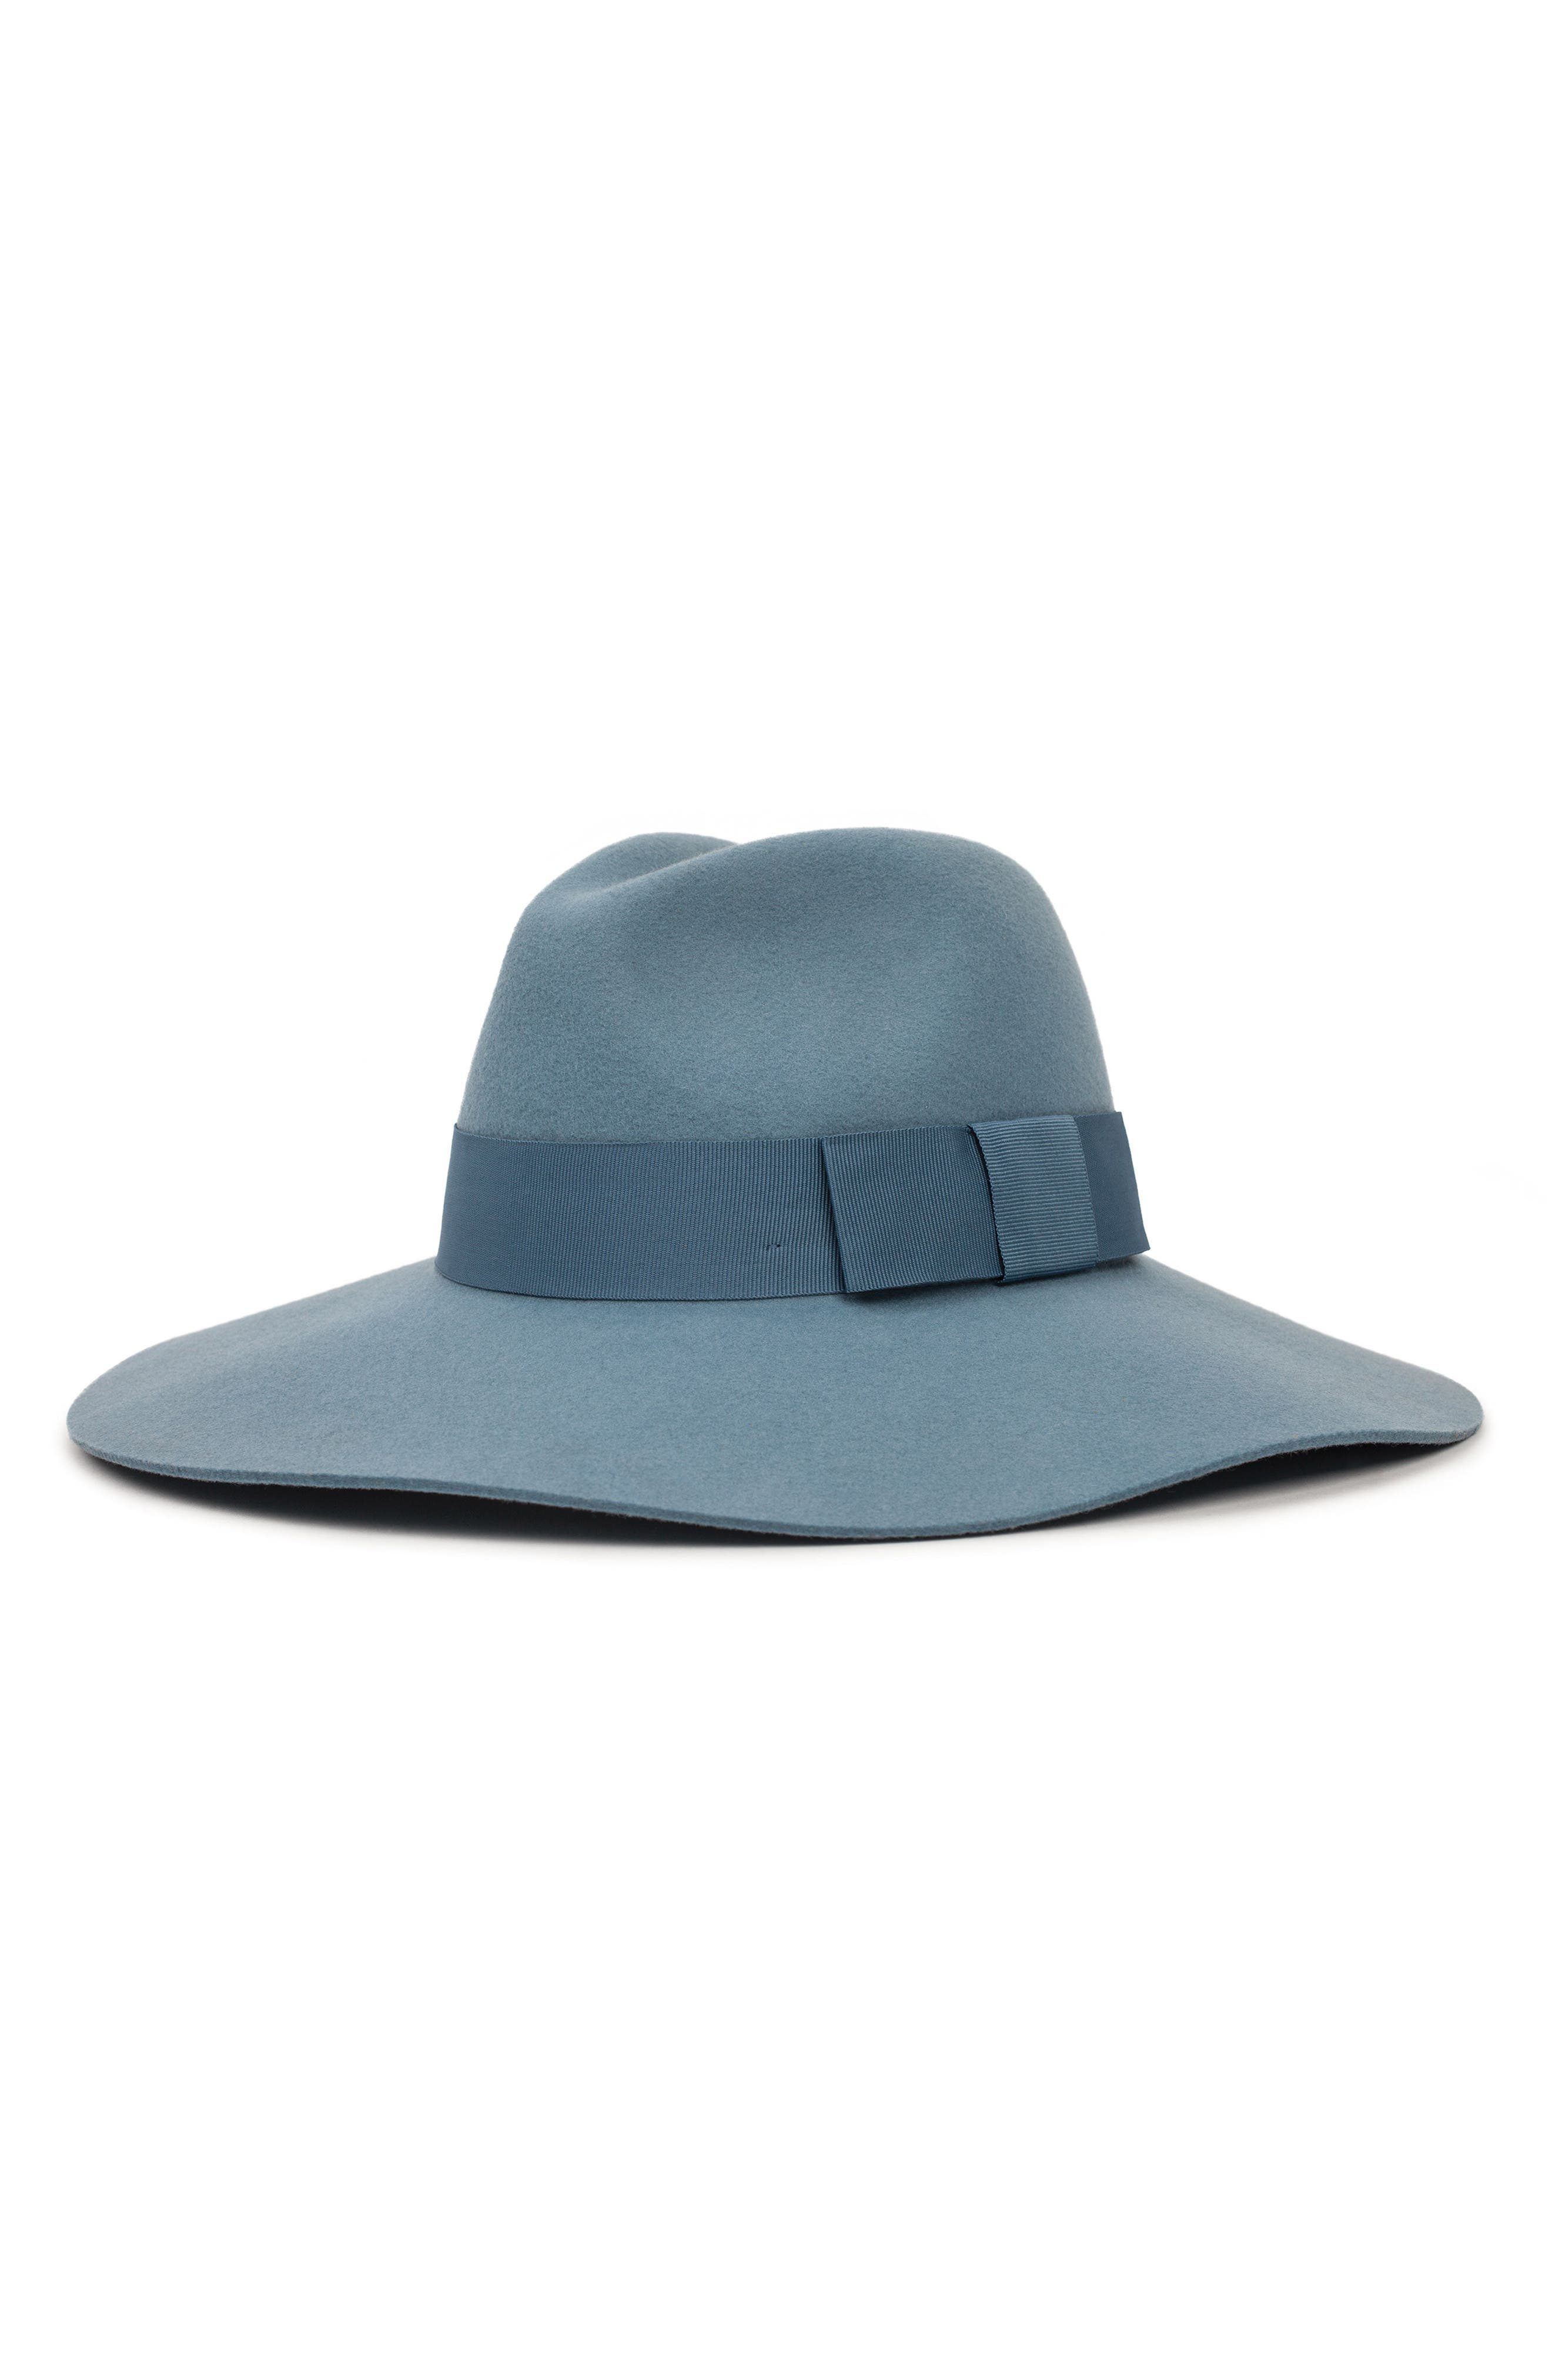 'Piper' Floppy Wool Hat,                         Main,                         color, Smoke Blue